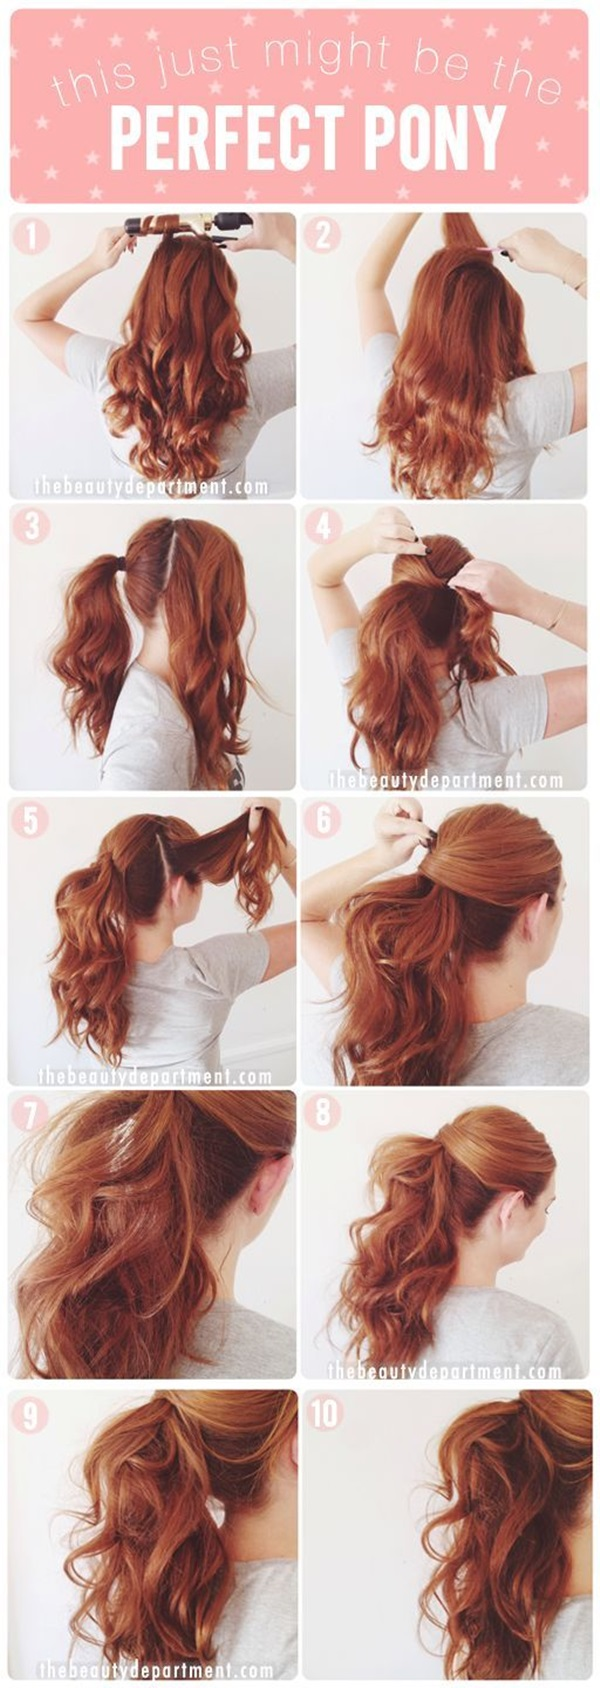 Simple Five Minute Hairstyles (11)